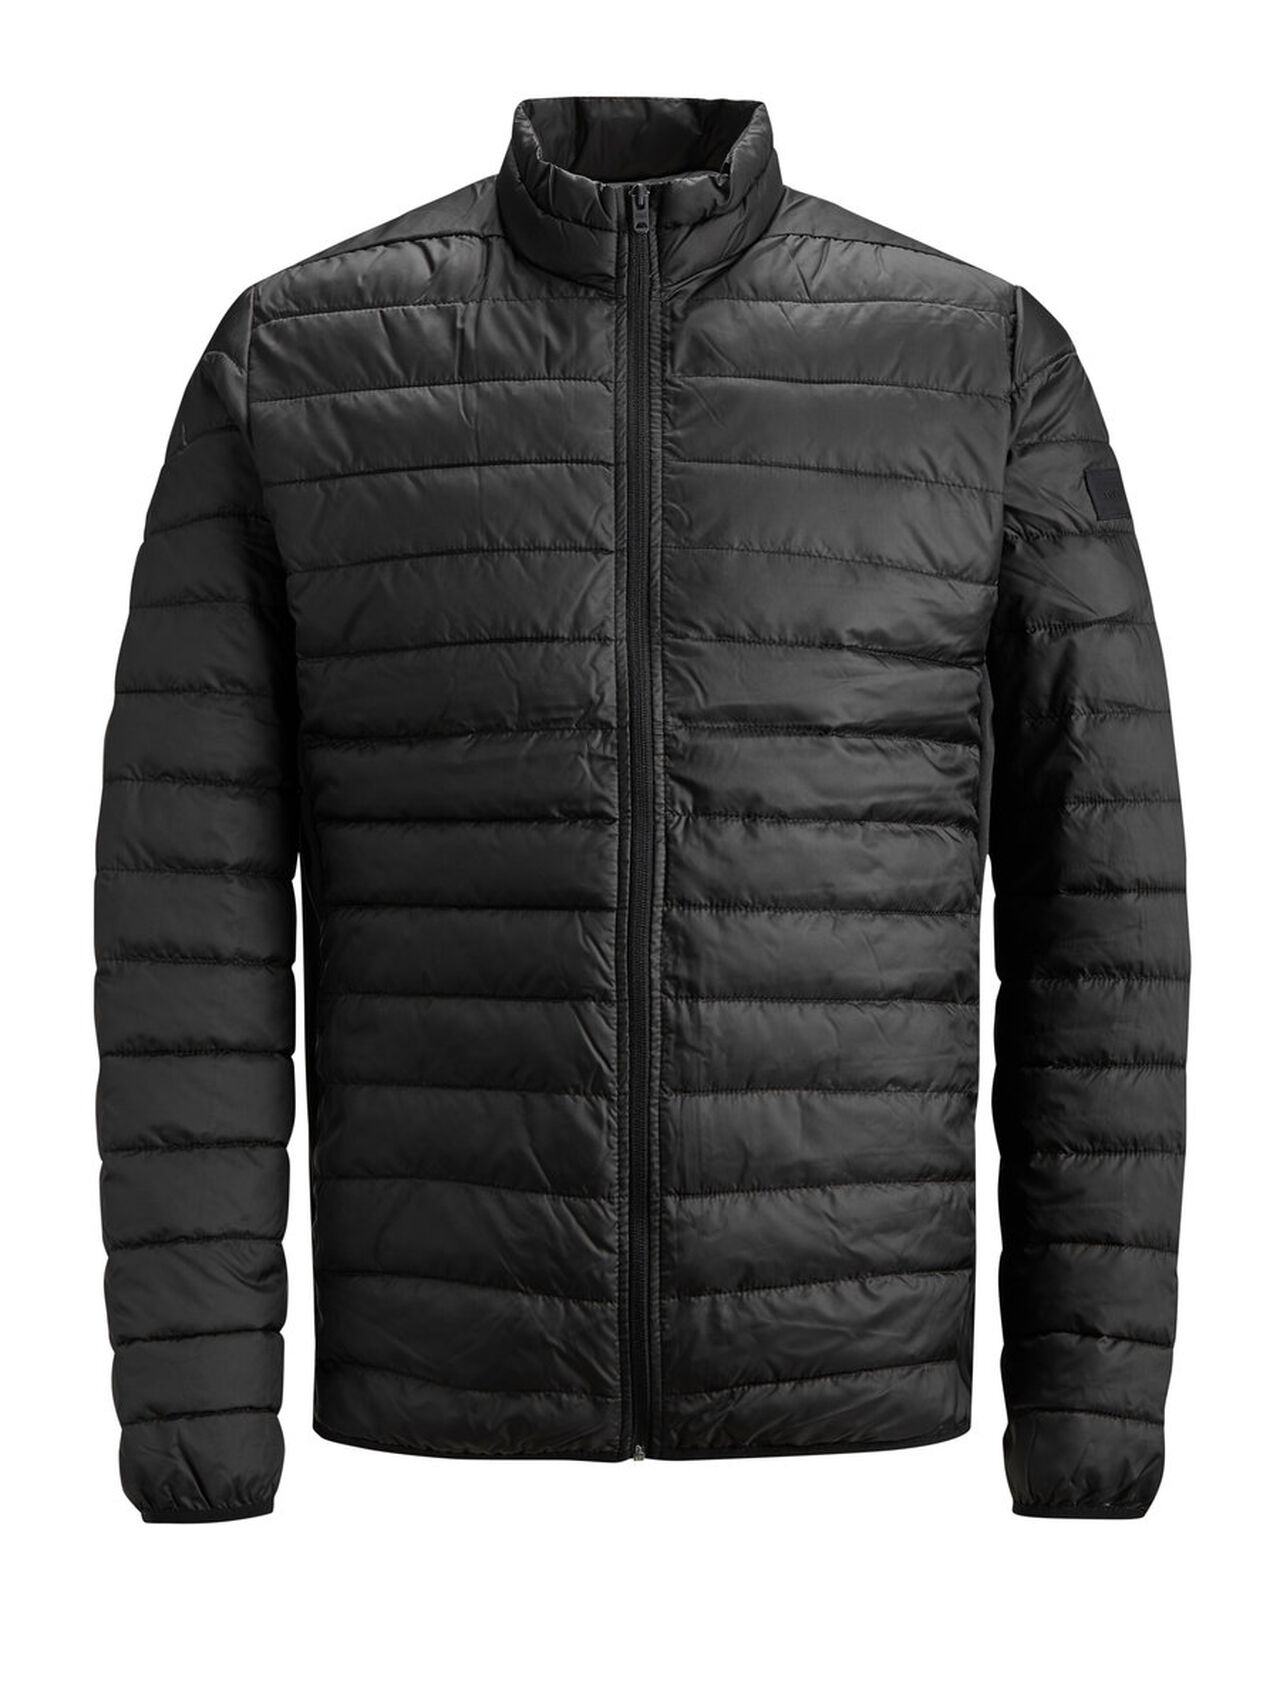 JACK & JONES Light Jacket Men Black